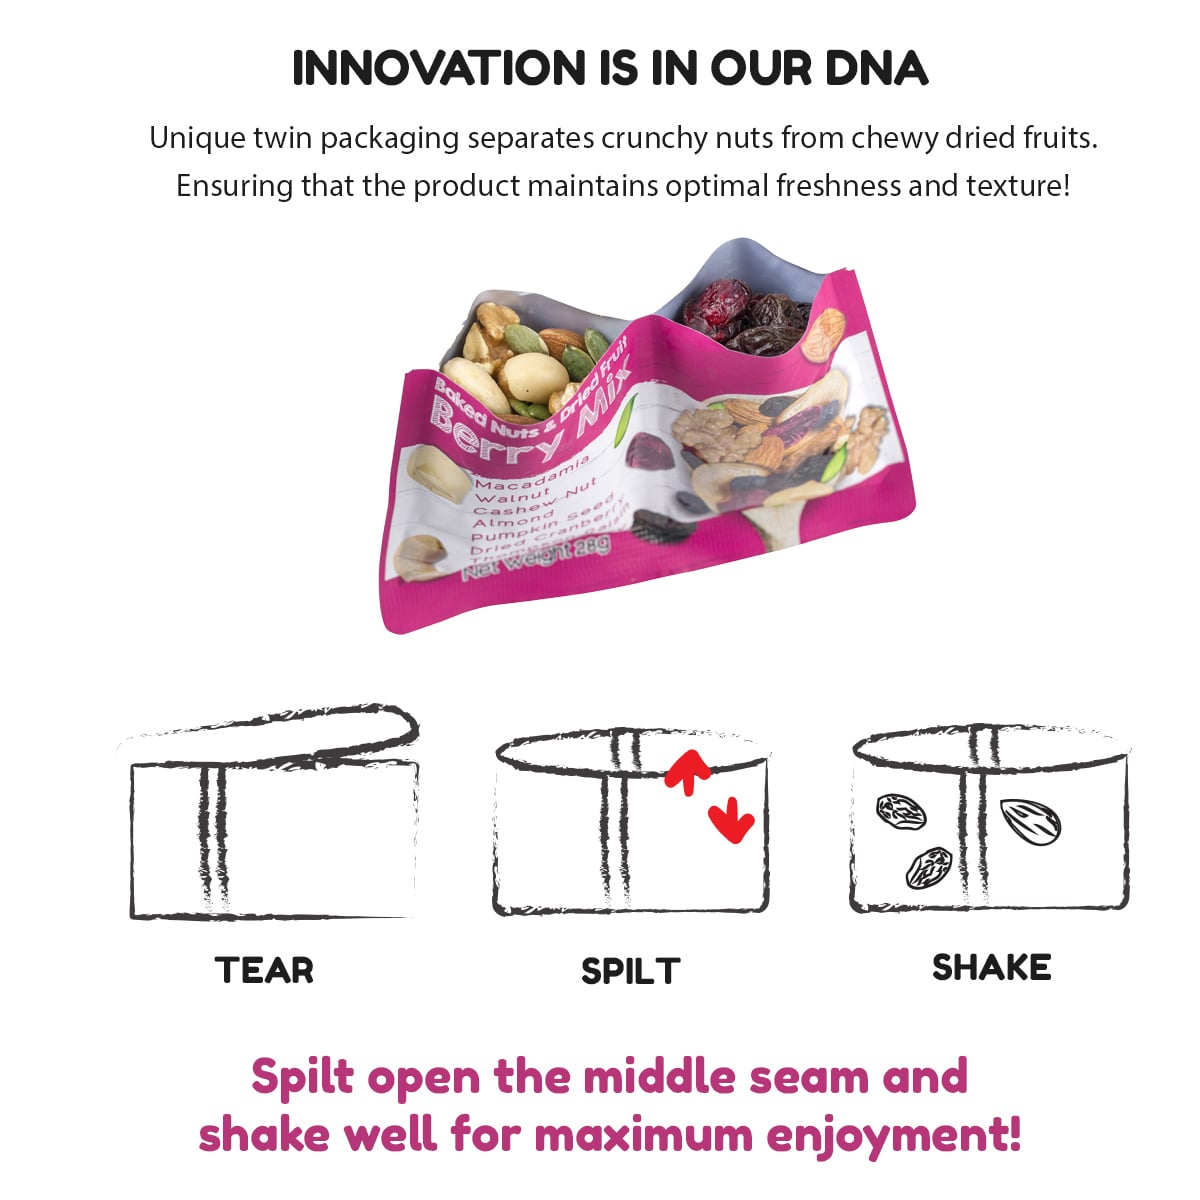 innovation_is_our_DNA-min